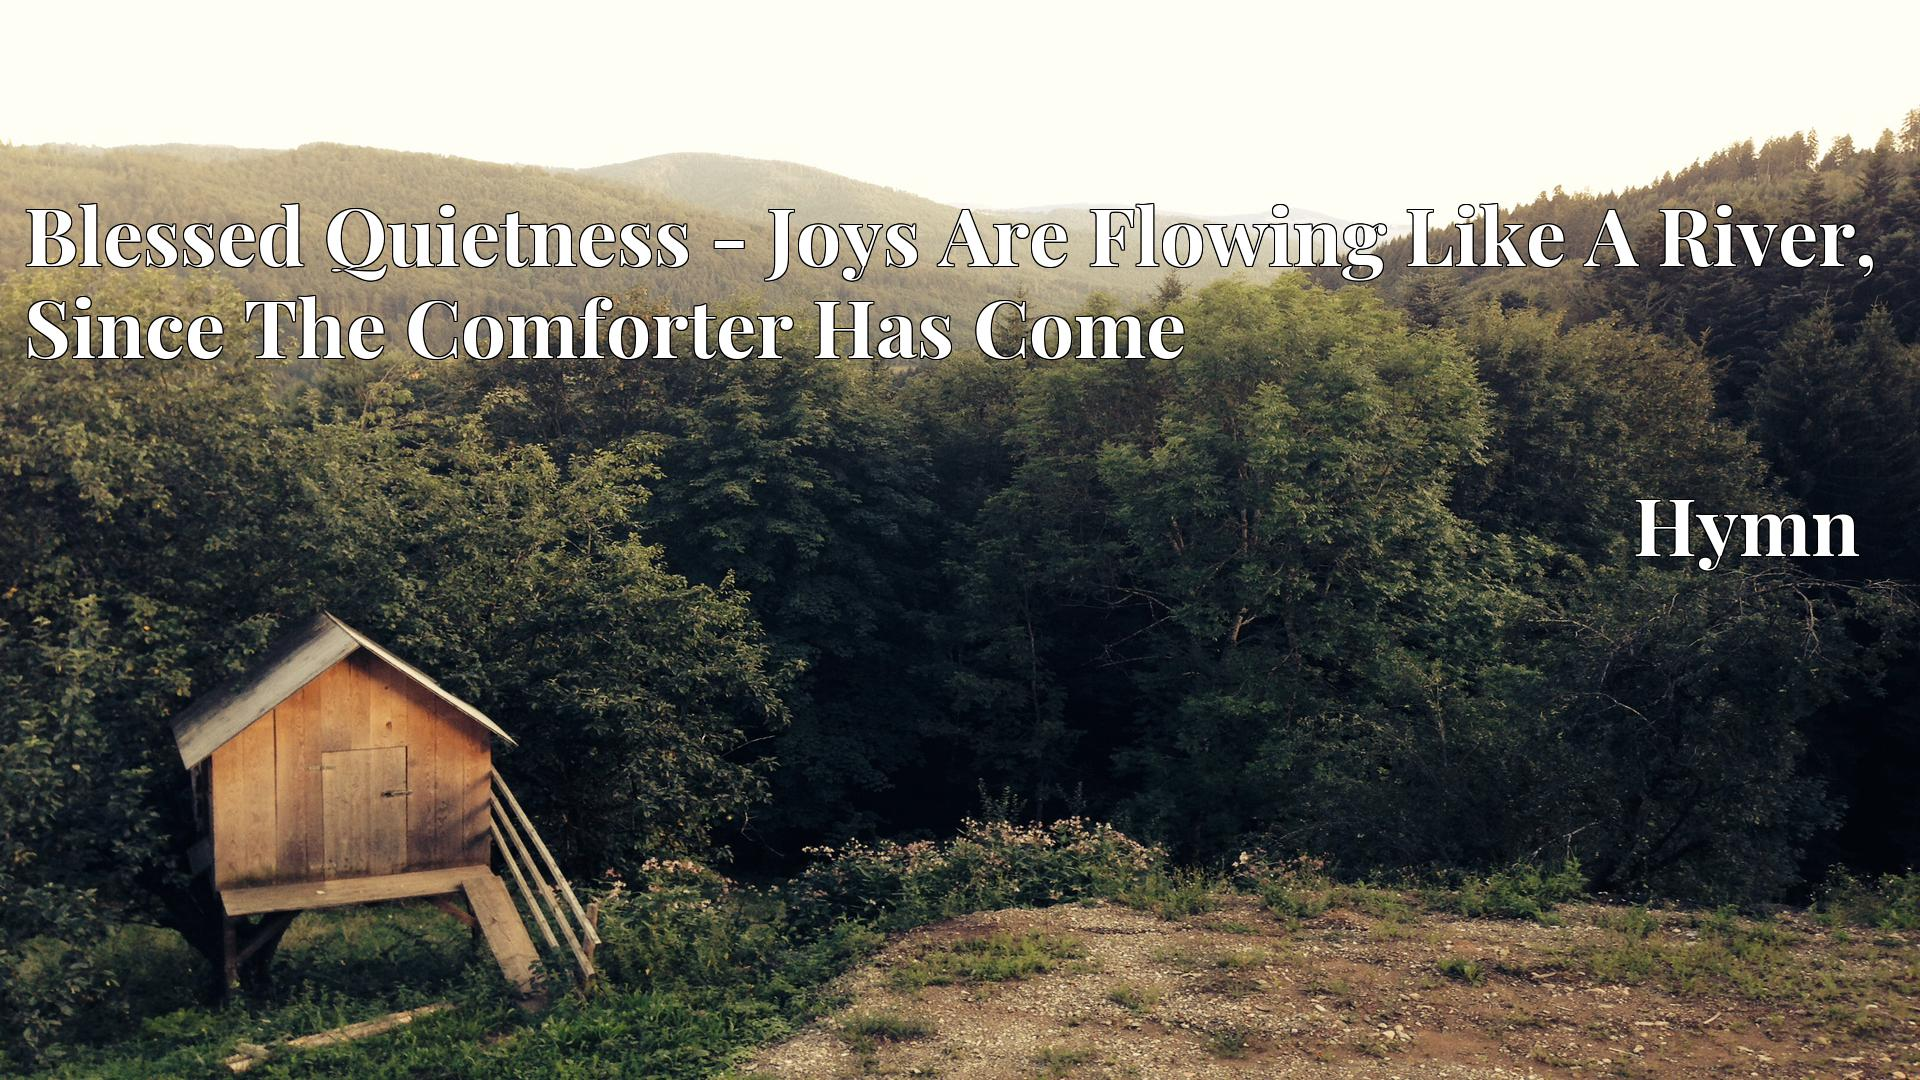 Blessed Quietness - Joys Are Flowing Like A River, Since The Comforter Has Come Hymn